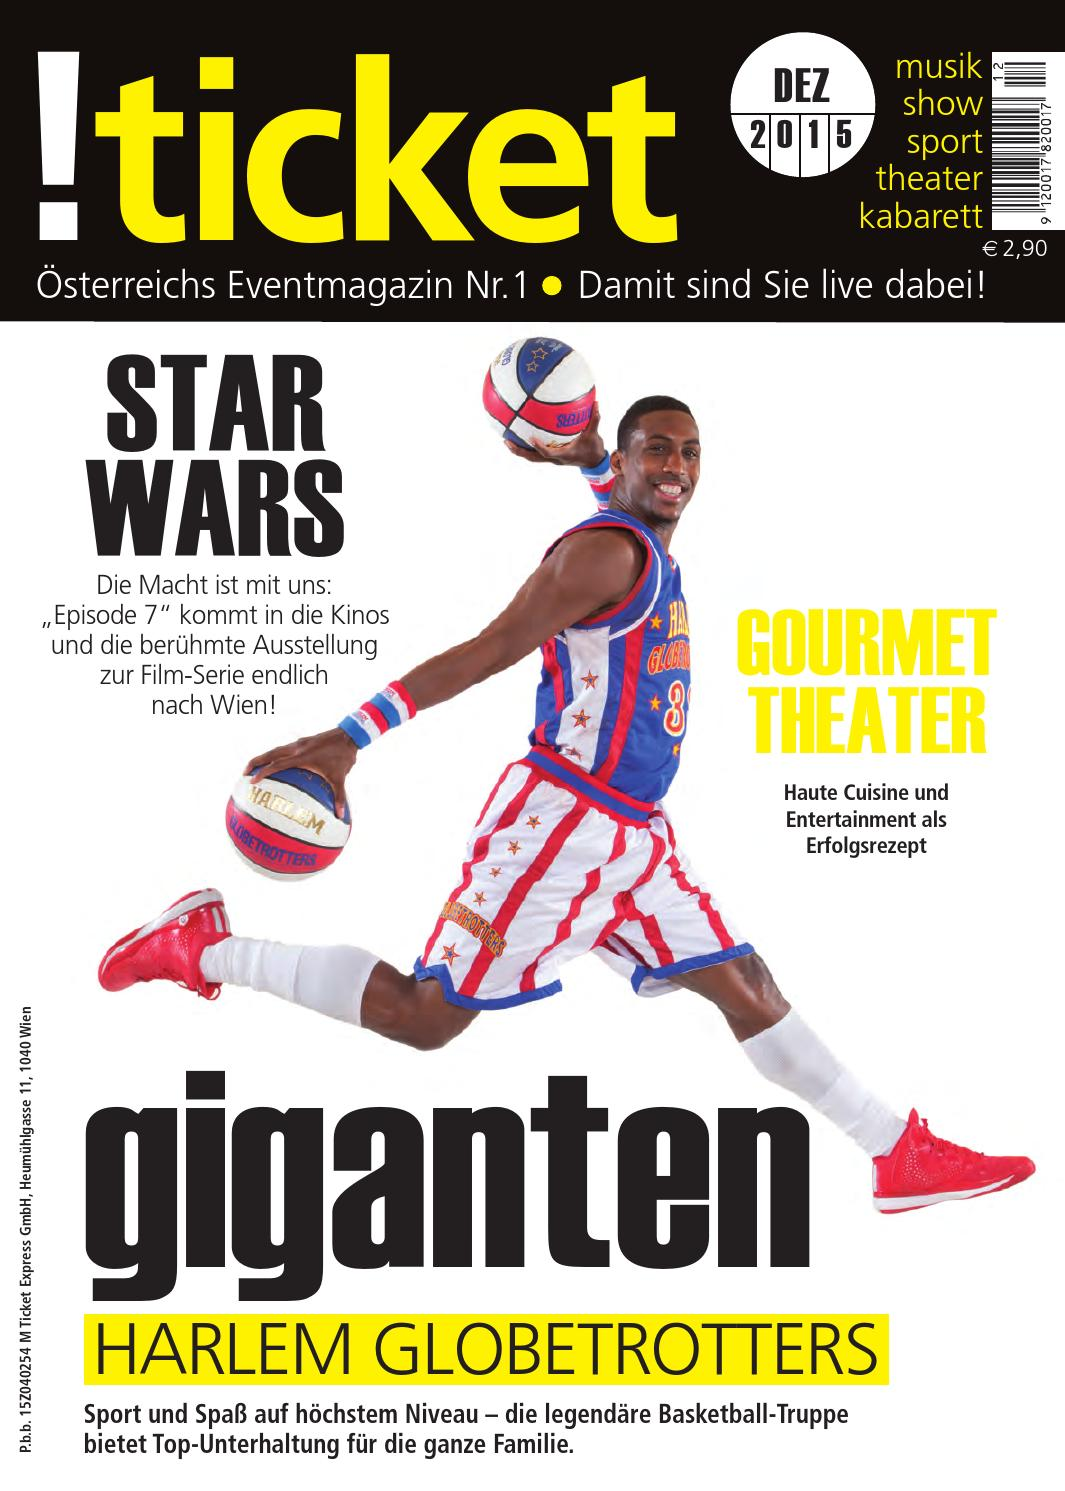 Ticket Dezember 2015 By Ticket Das Eventmagazin Issuu